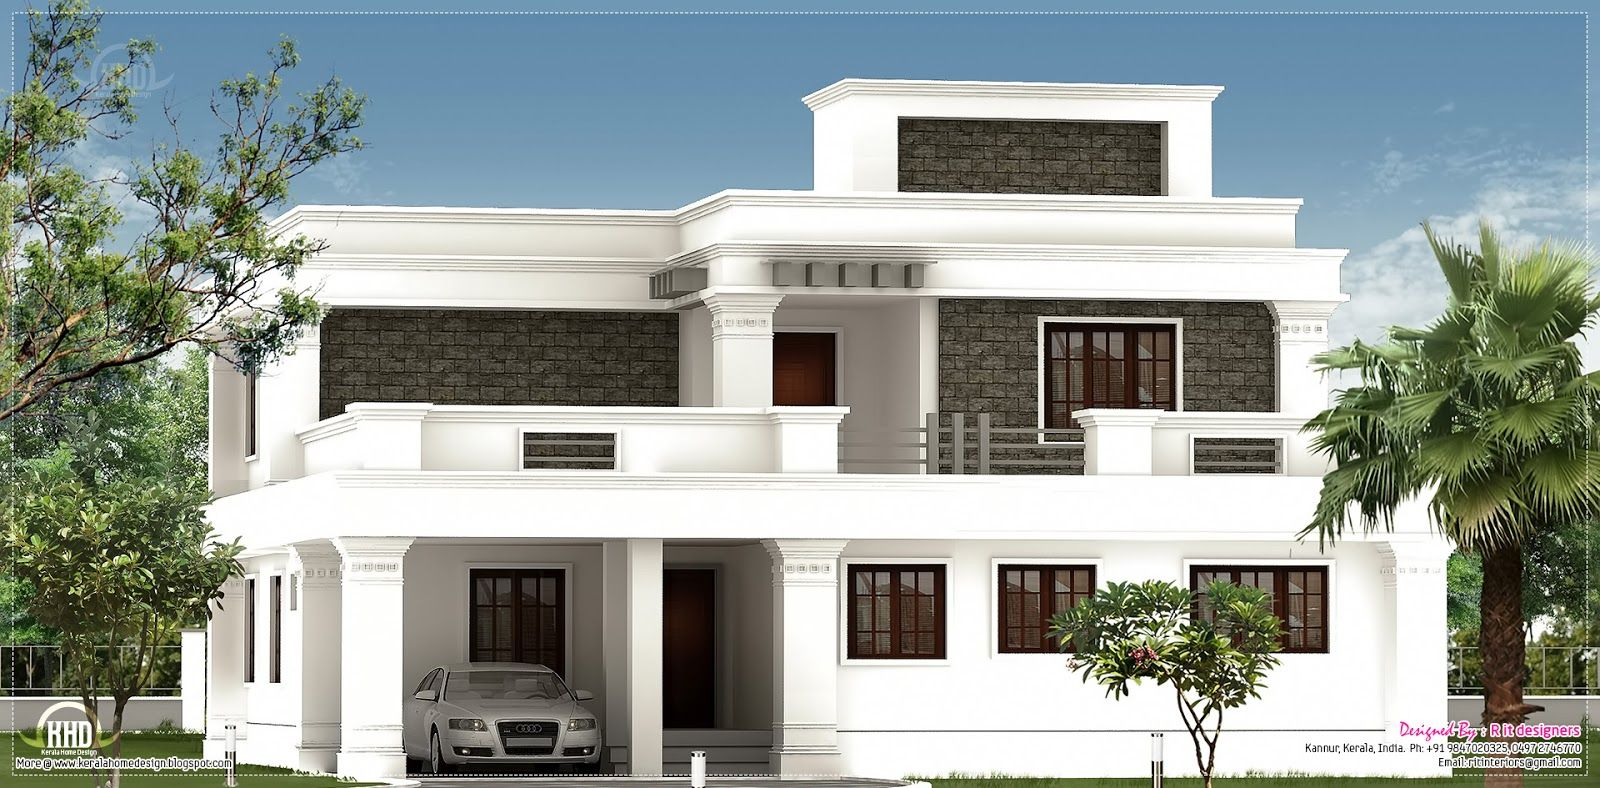 Flat roof homes designs flat roof villa exterior in 2400 for House design interior and exterior